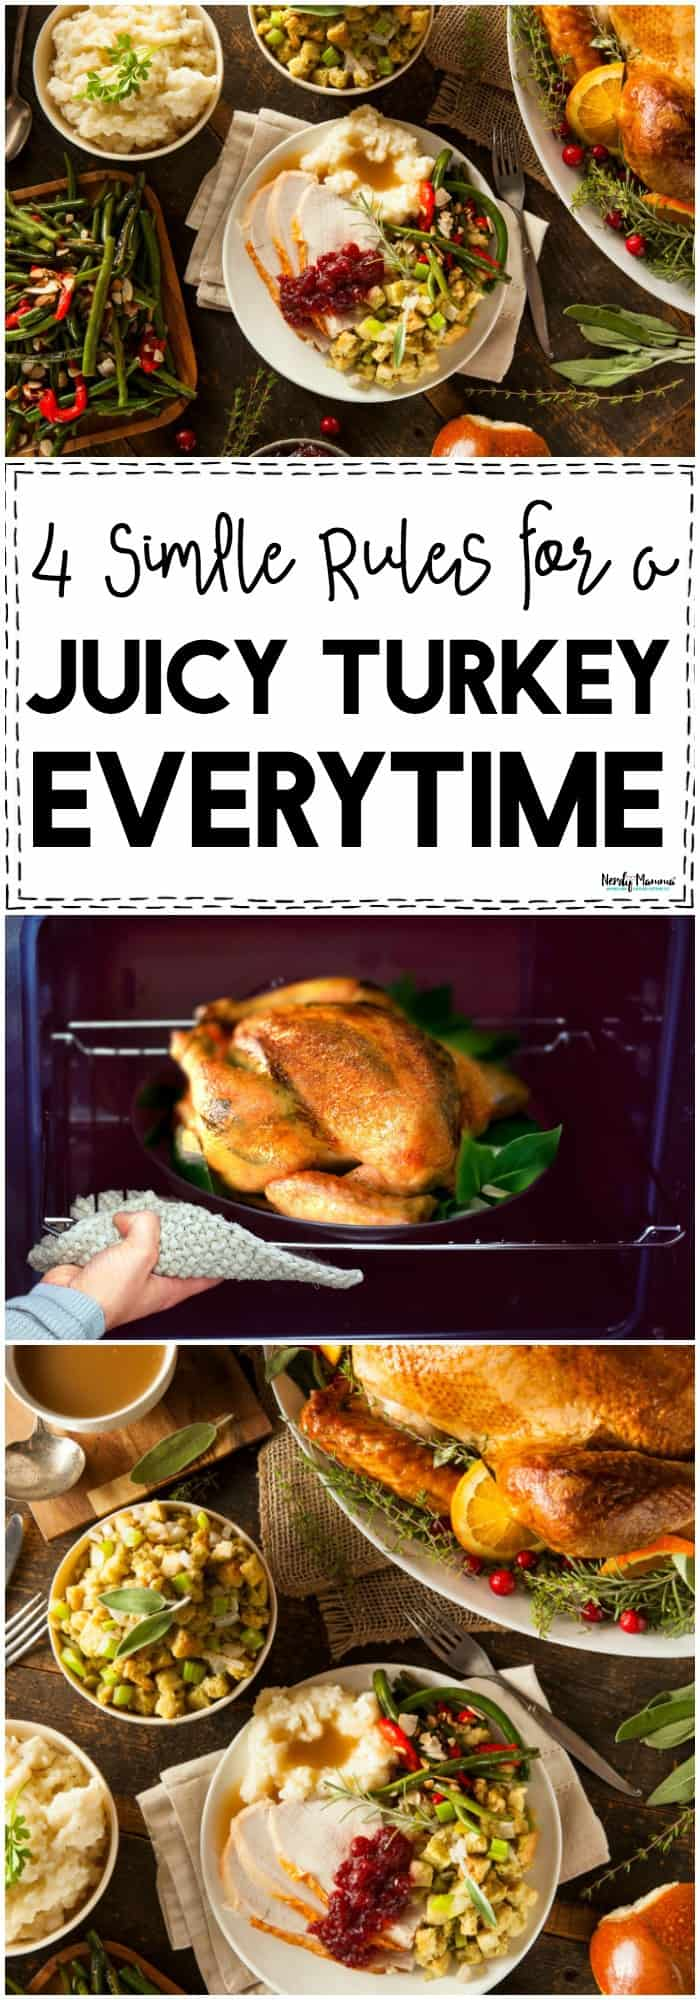 OMG You've GOT to check out these LIFE-SAVING Turkey tips! Get a juicy turkey every flipping time! Don't ruin Thanksgiving and dry out the turkey. Seriously, just check out these tips!!